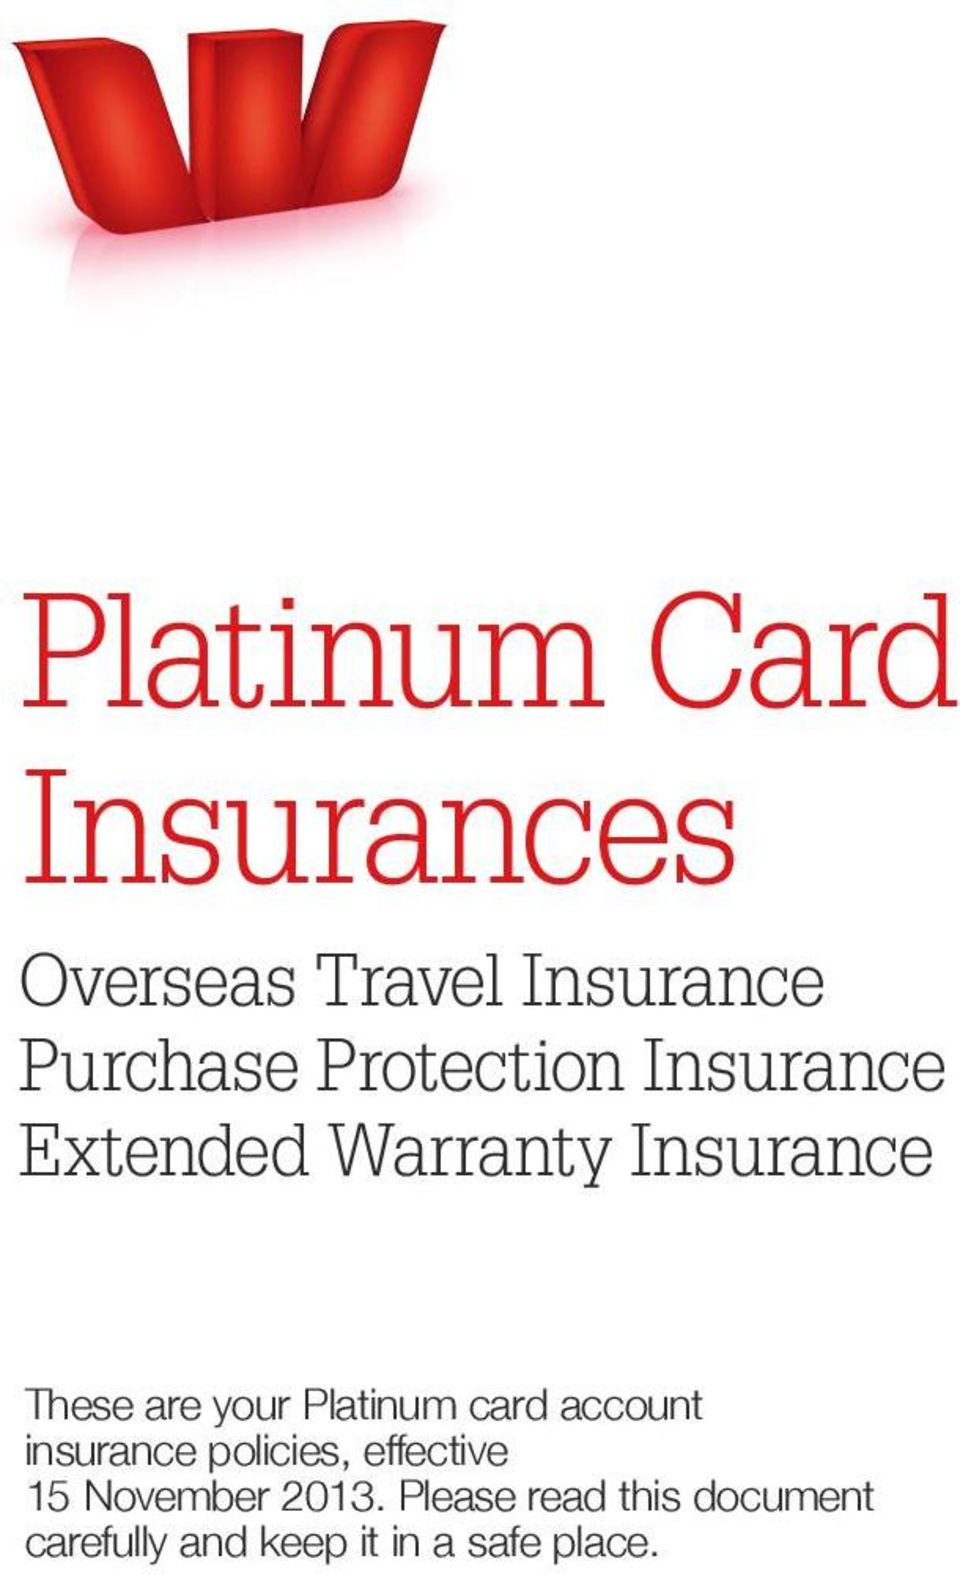 Platinum card account insurance policies, effective 15 November